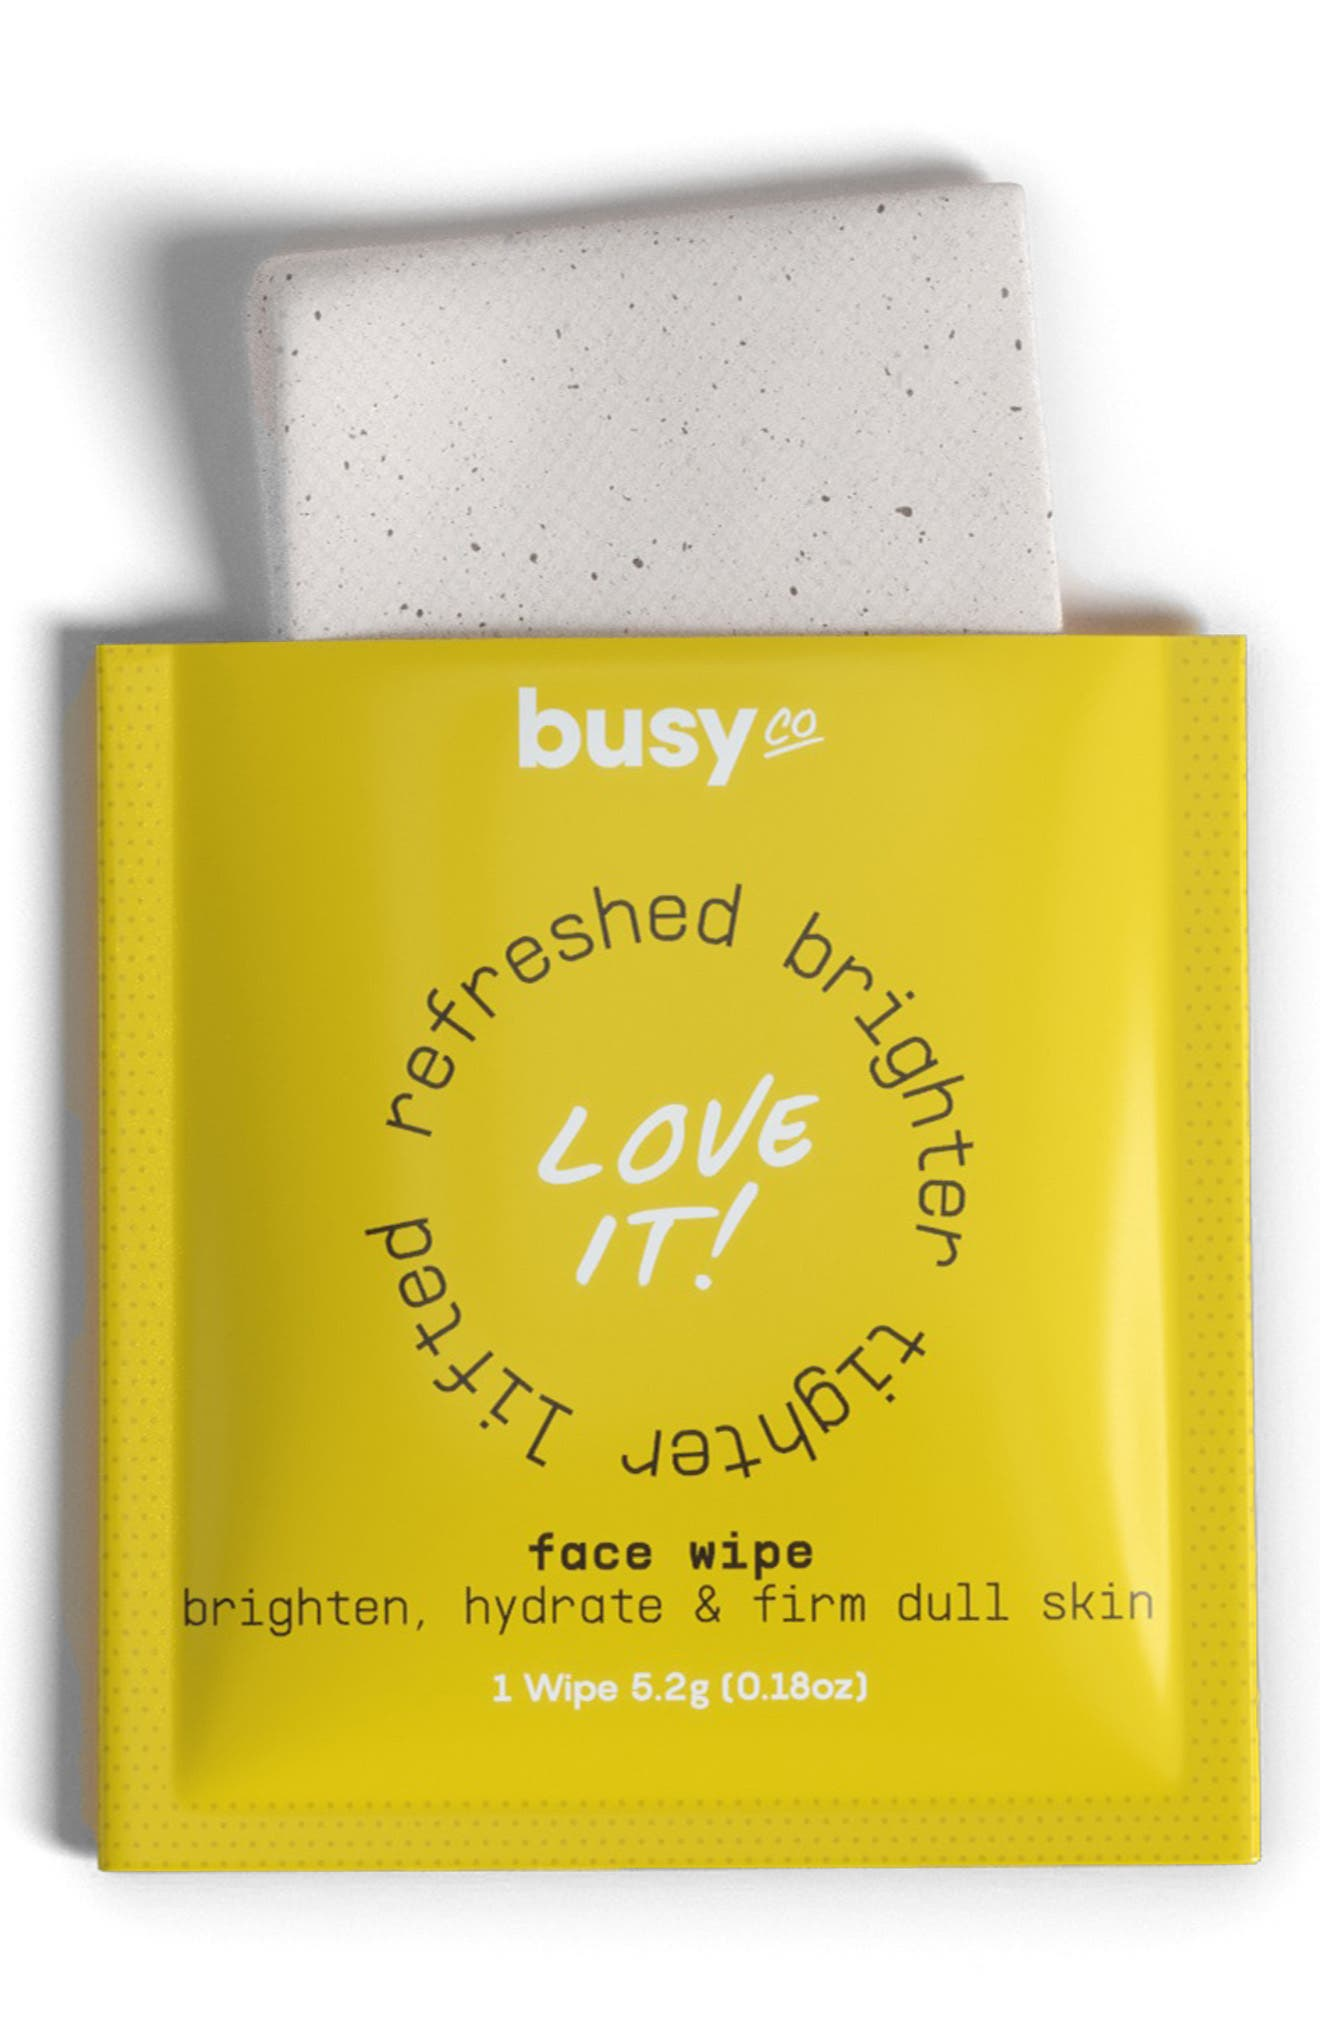 Busy Go Glow Face Wipes